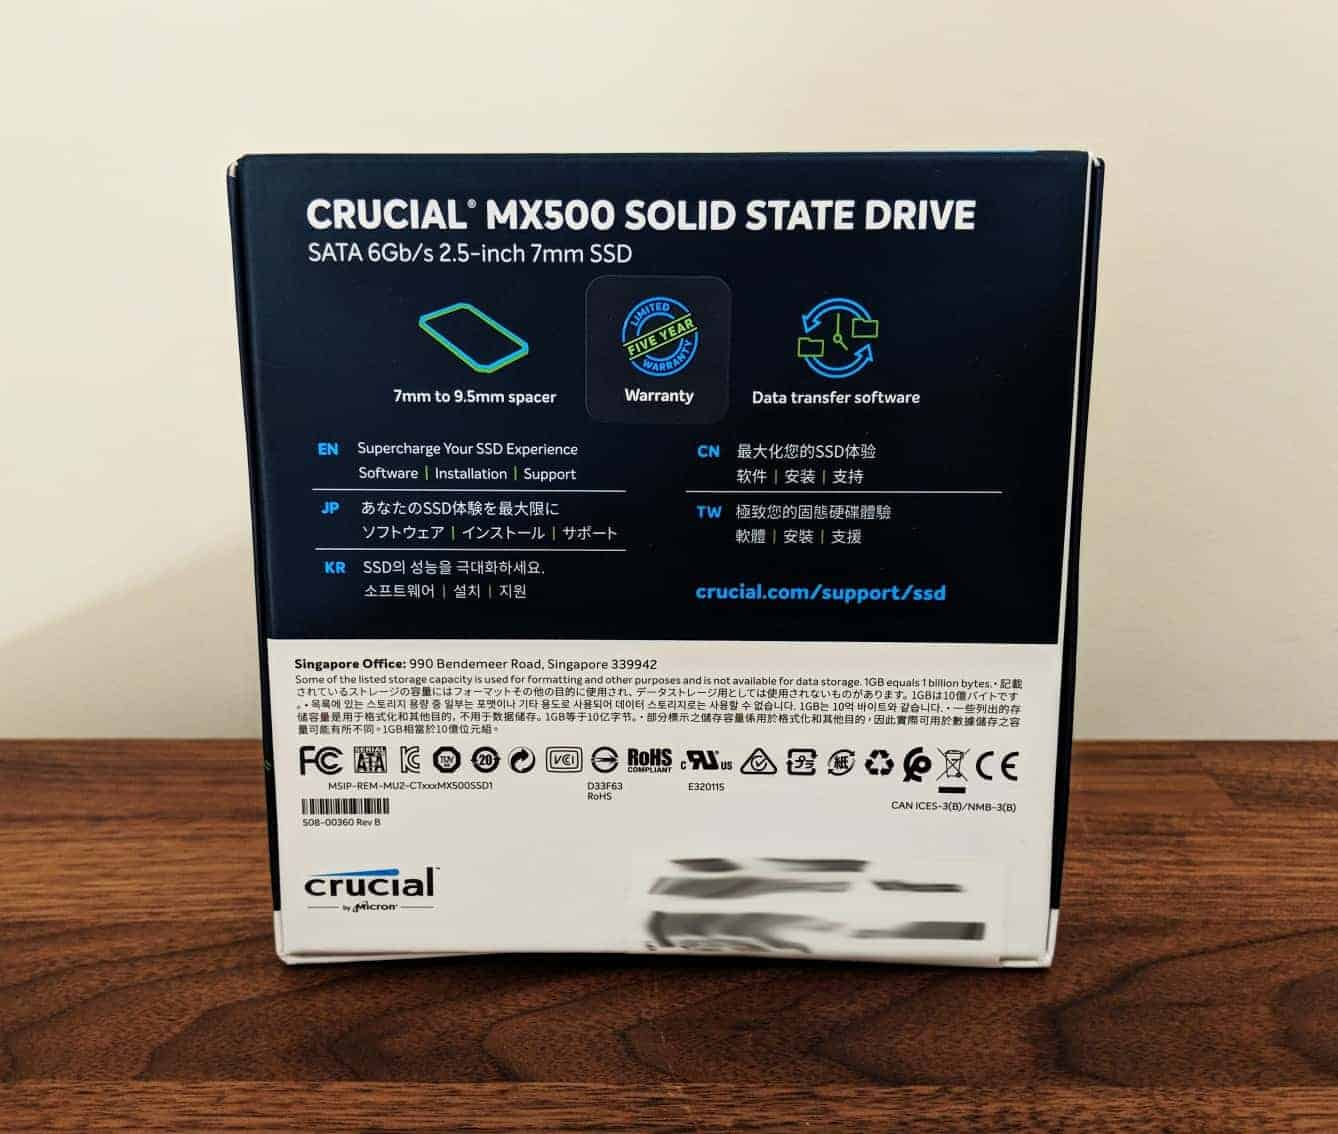 Crucial-MX500-1TB-Photos14 Crucial MX500 1TB SSD Review